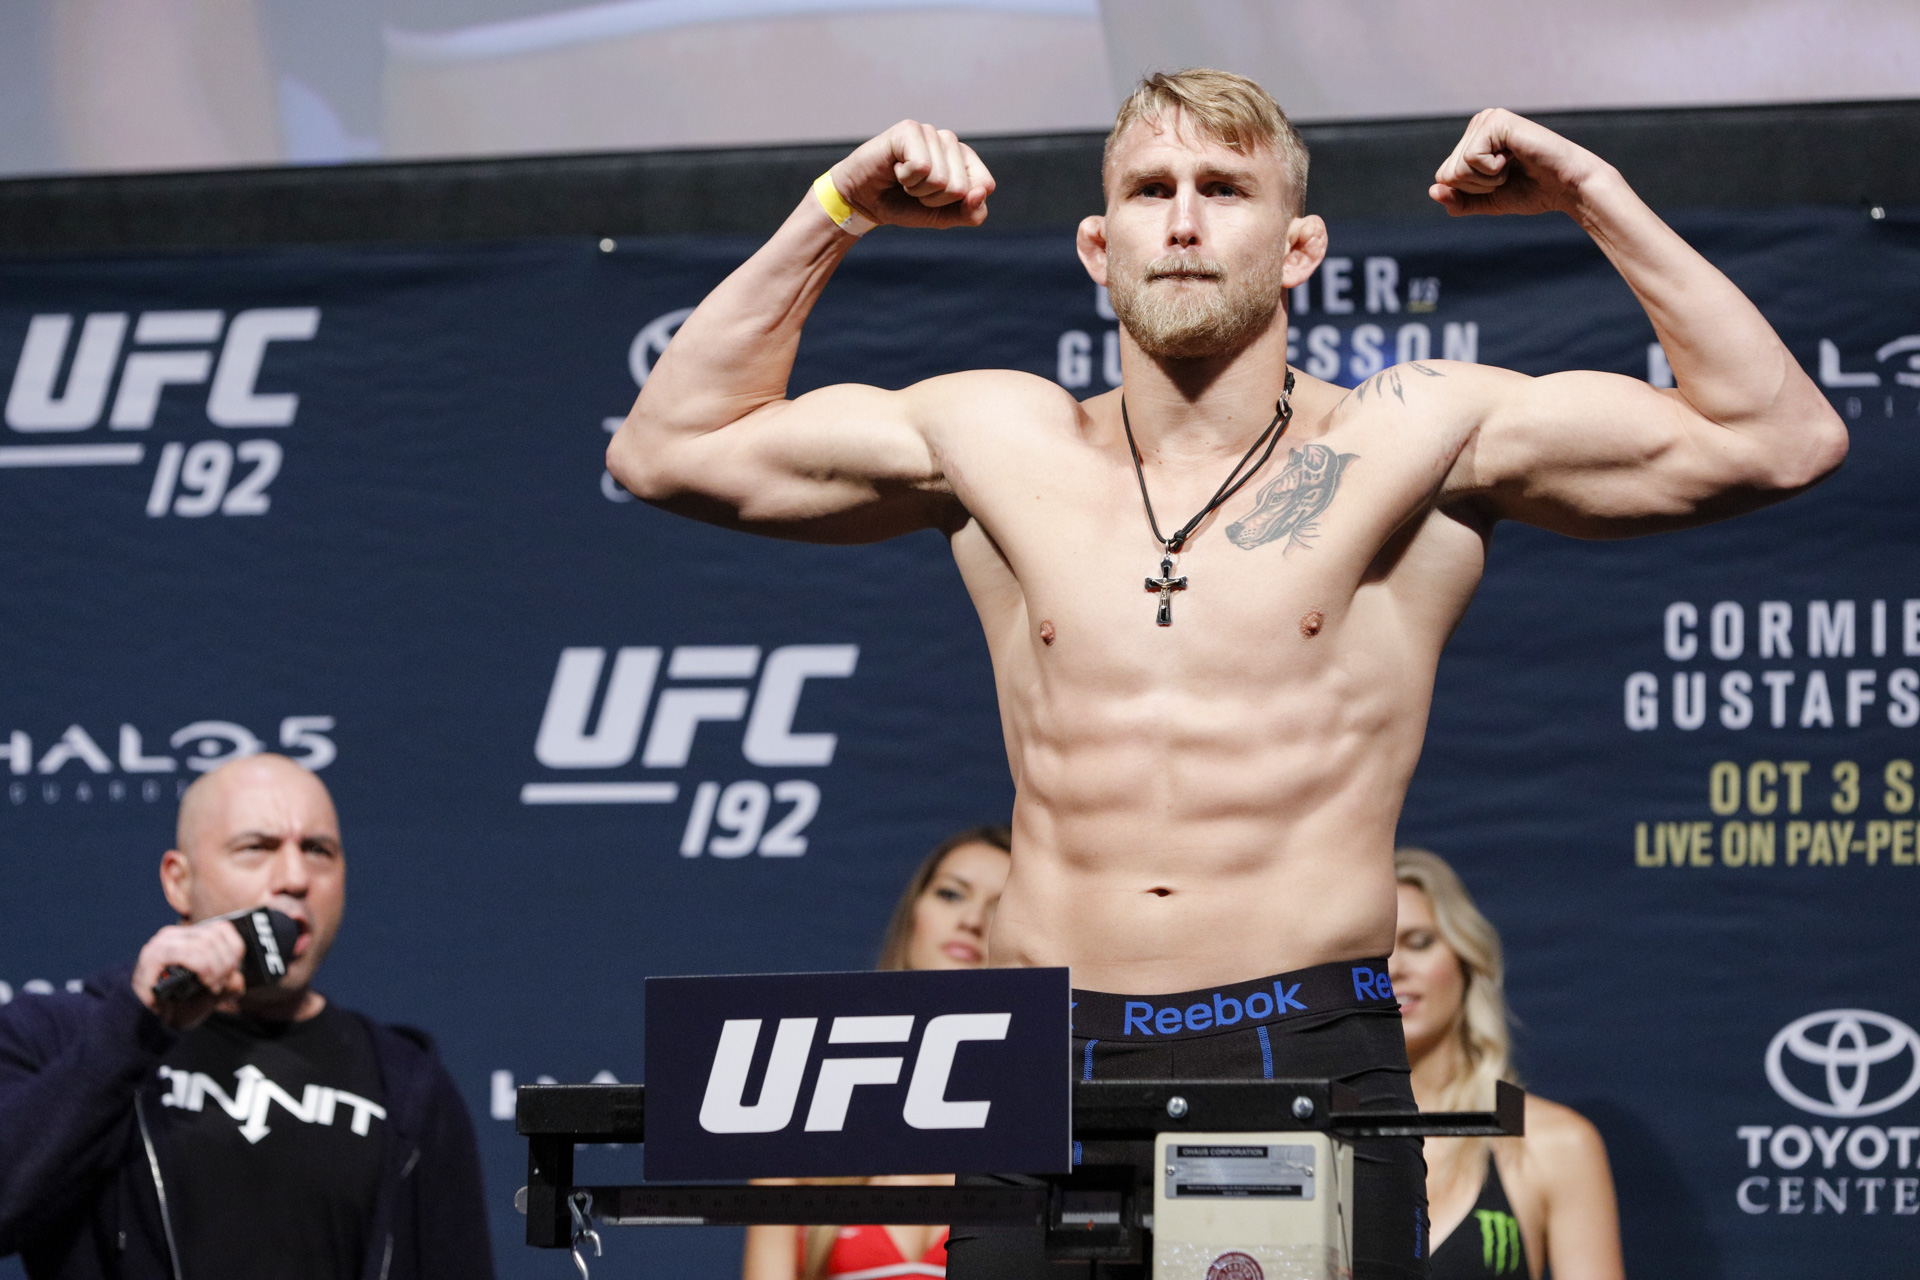 UFC 192 weigh-in photos - MMA ...